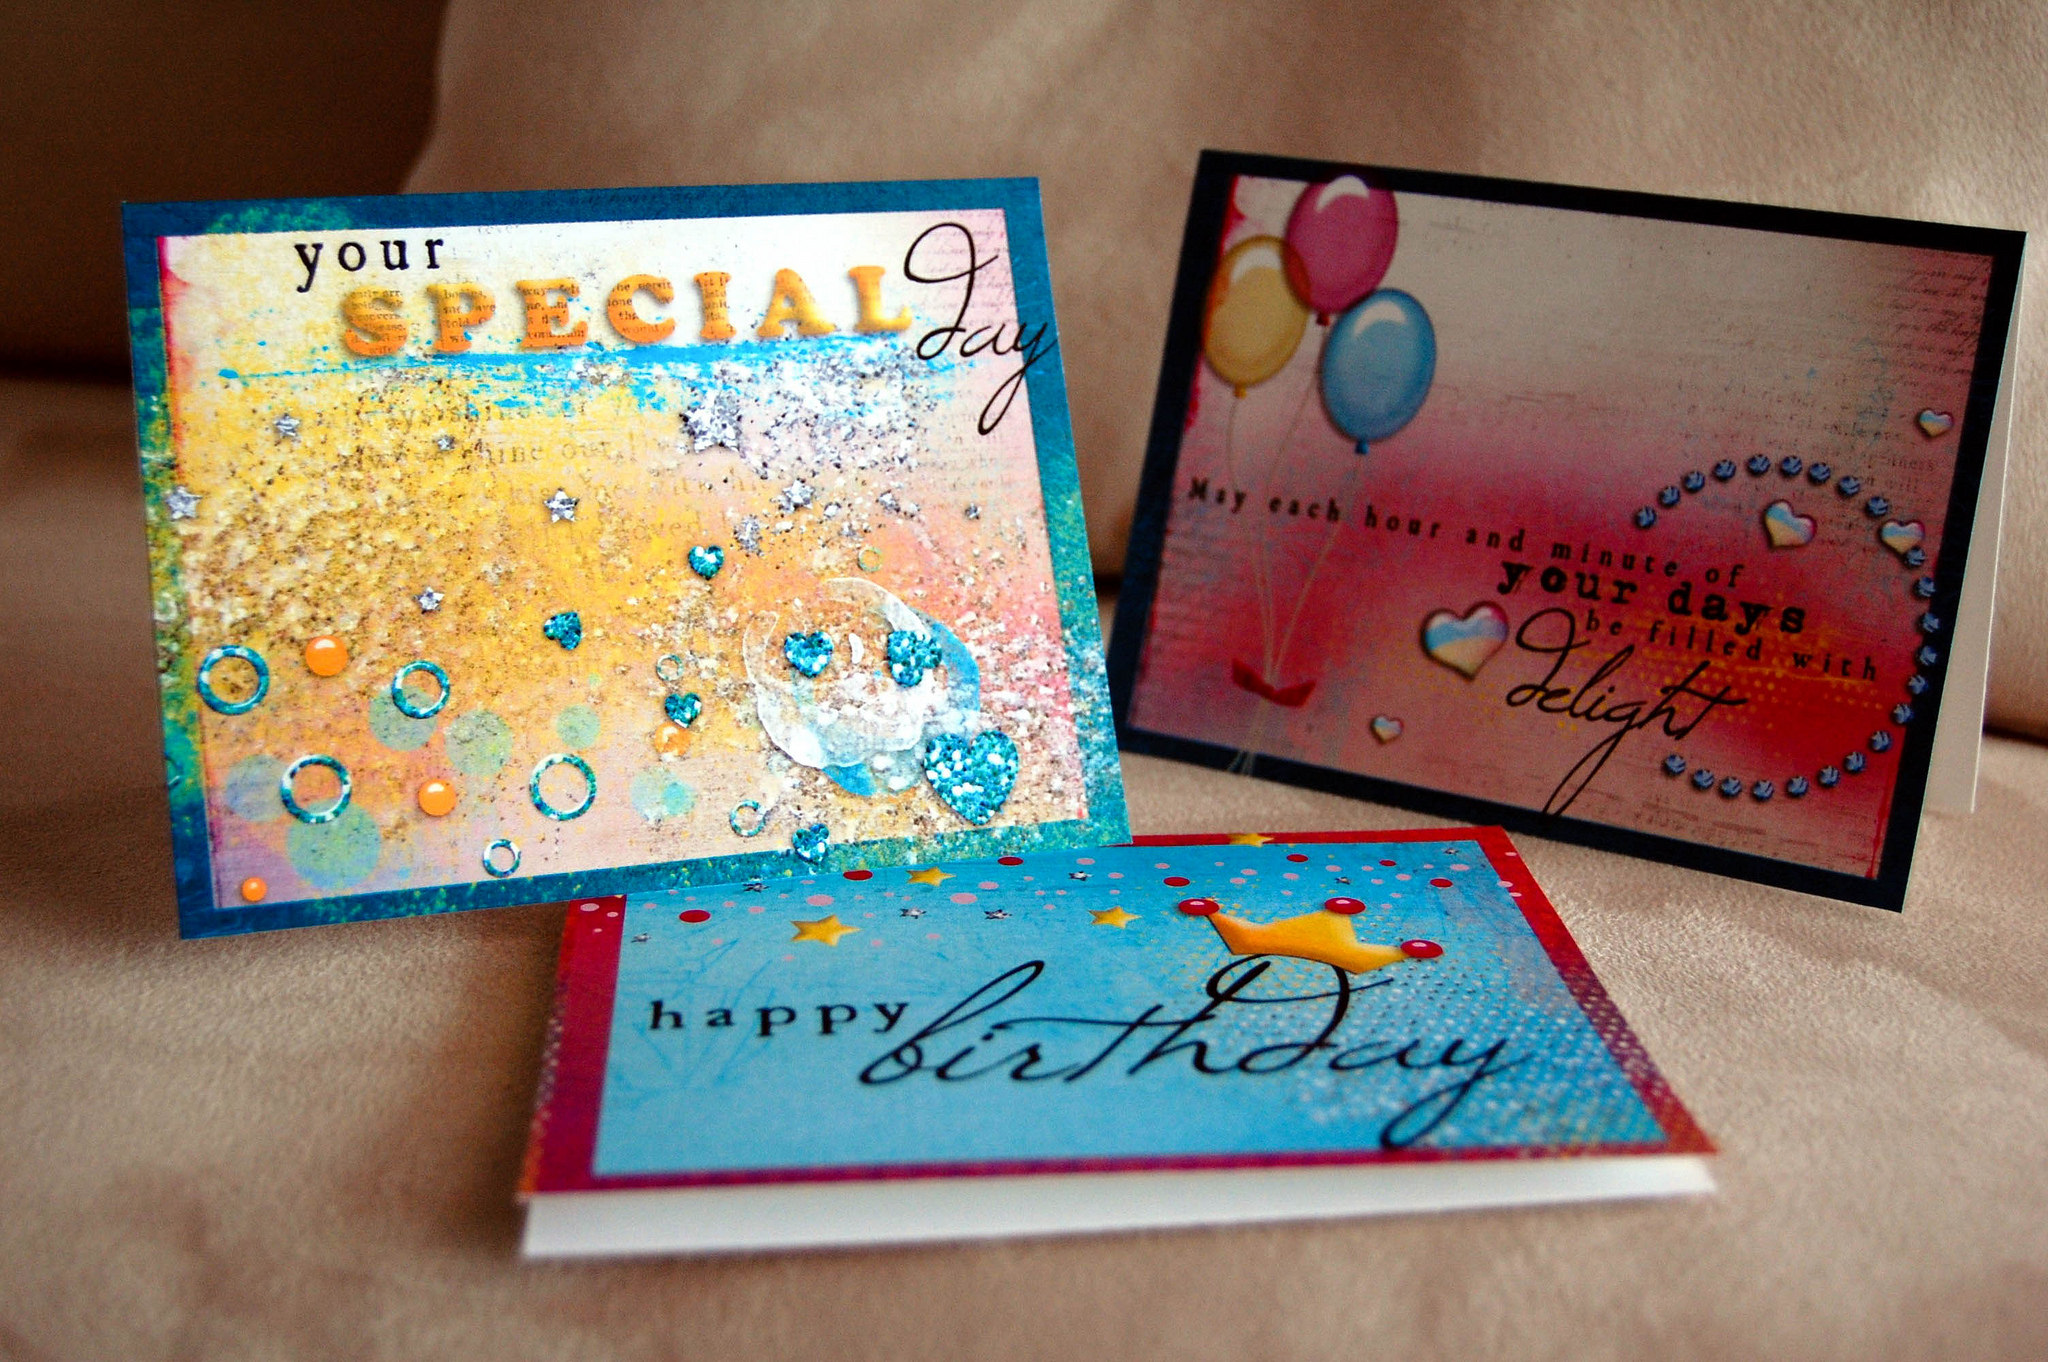 Cards created with digital supplies and printed at home in 2010. Kitty Designs.